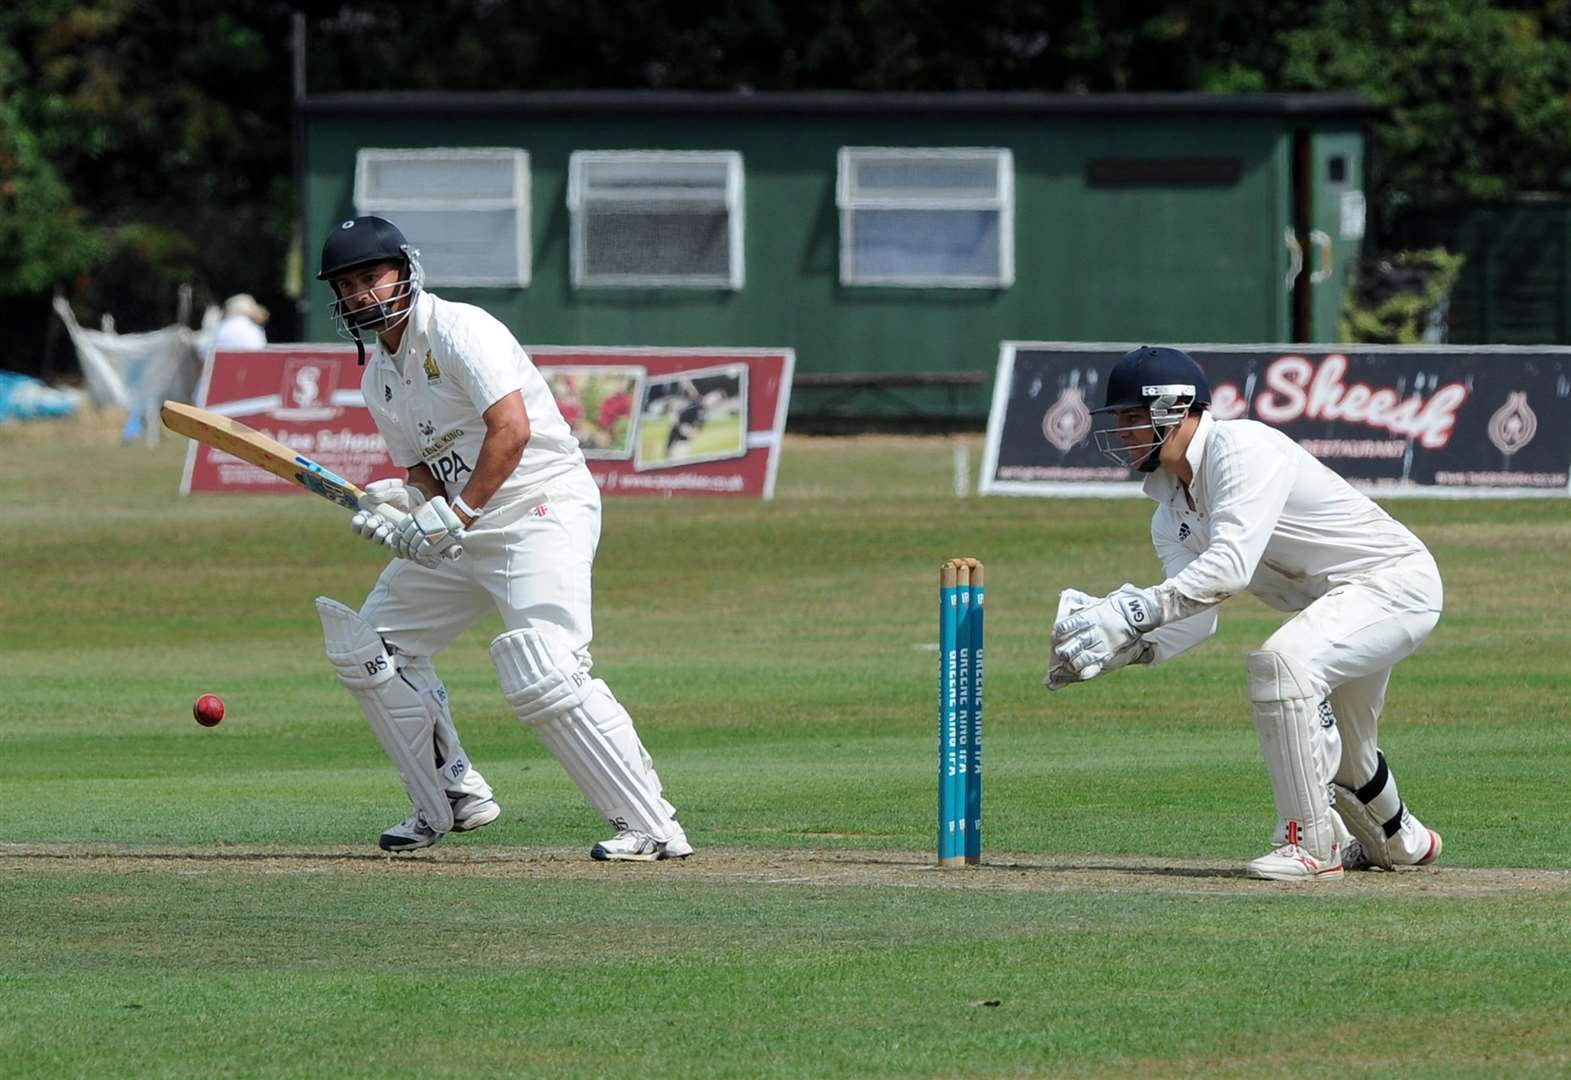 All or nothing for Bury St Edmunds' cricketers as play-offs loom